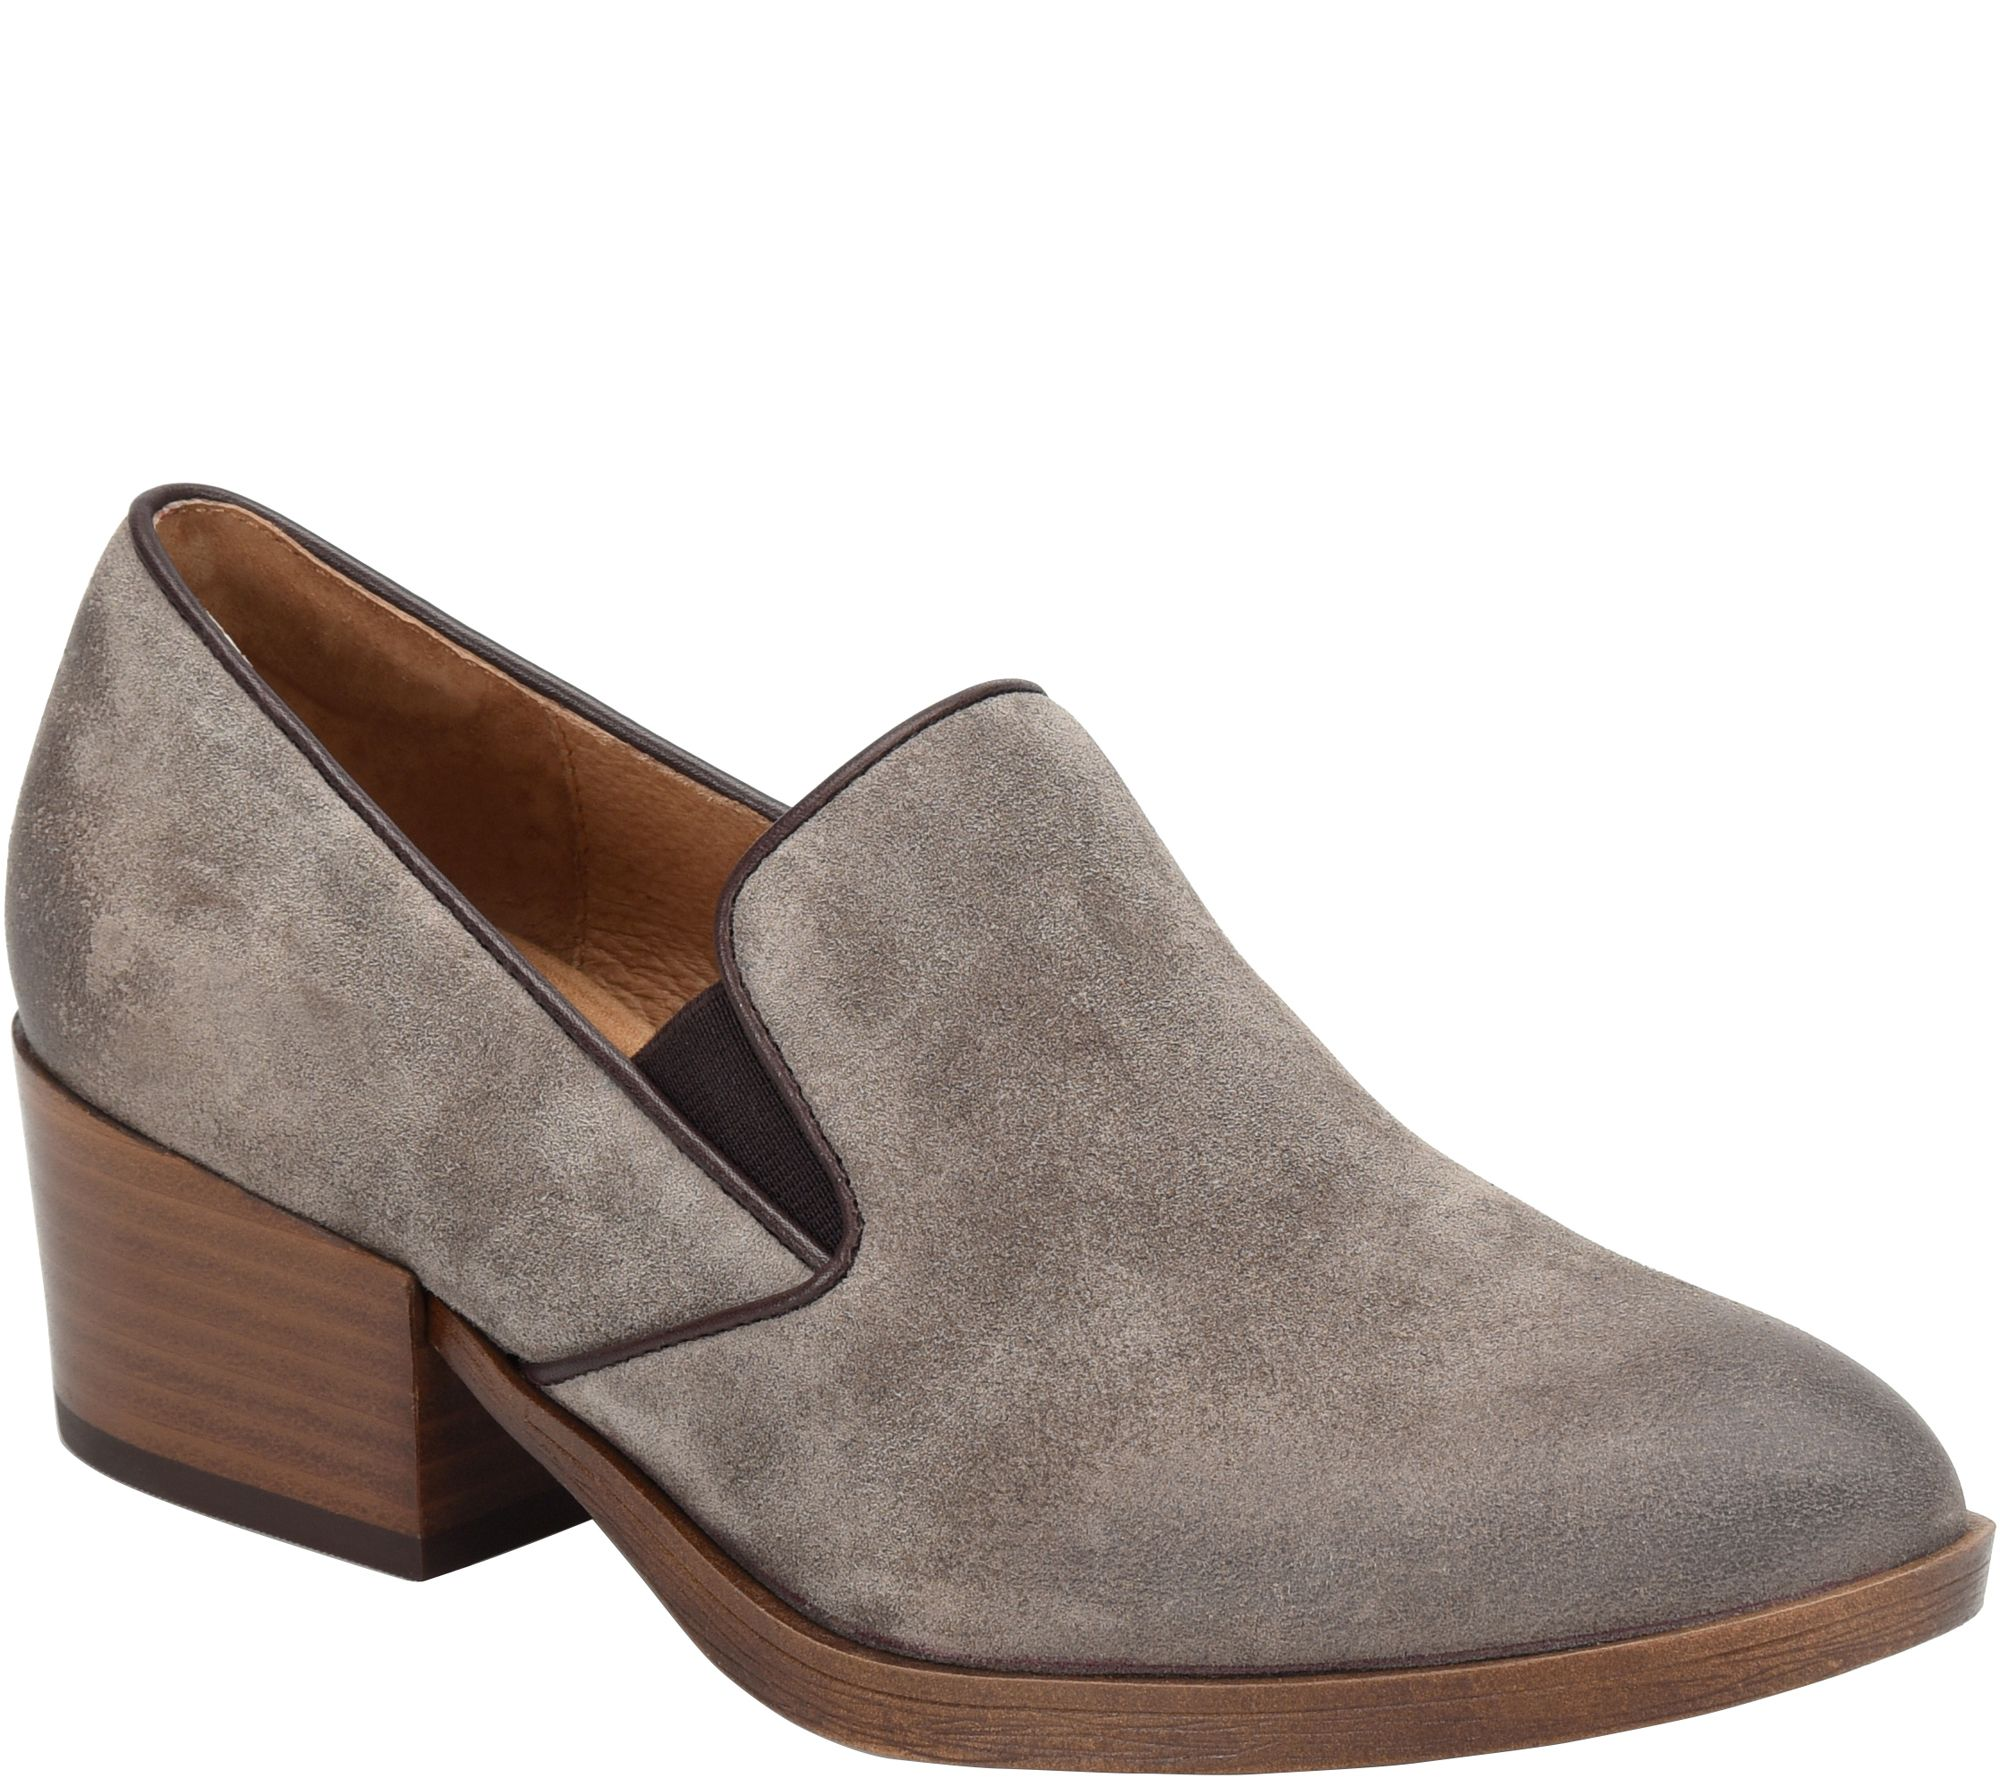 52191c5bcac Sofft Leather Slip On Loafers - Velina - Page 1 — QVC.com